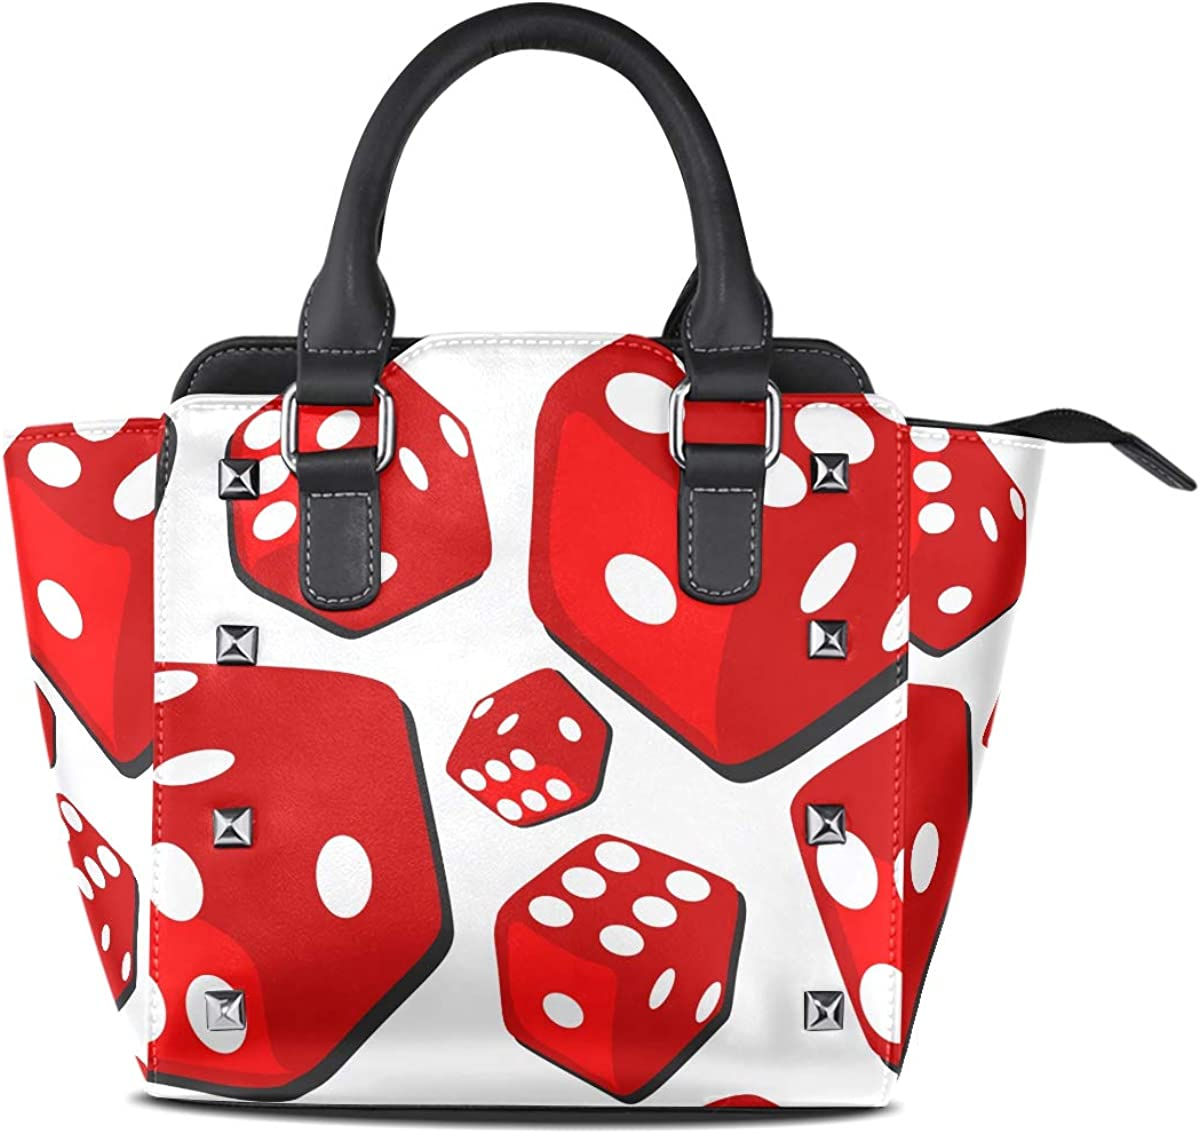 DEZIRO Big Red Dices evening handbags and clutches for women